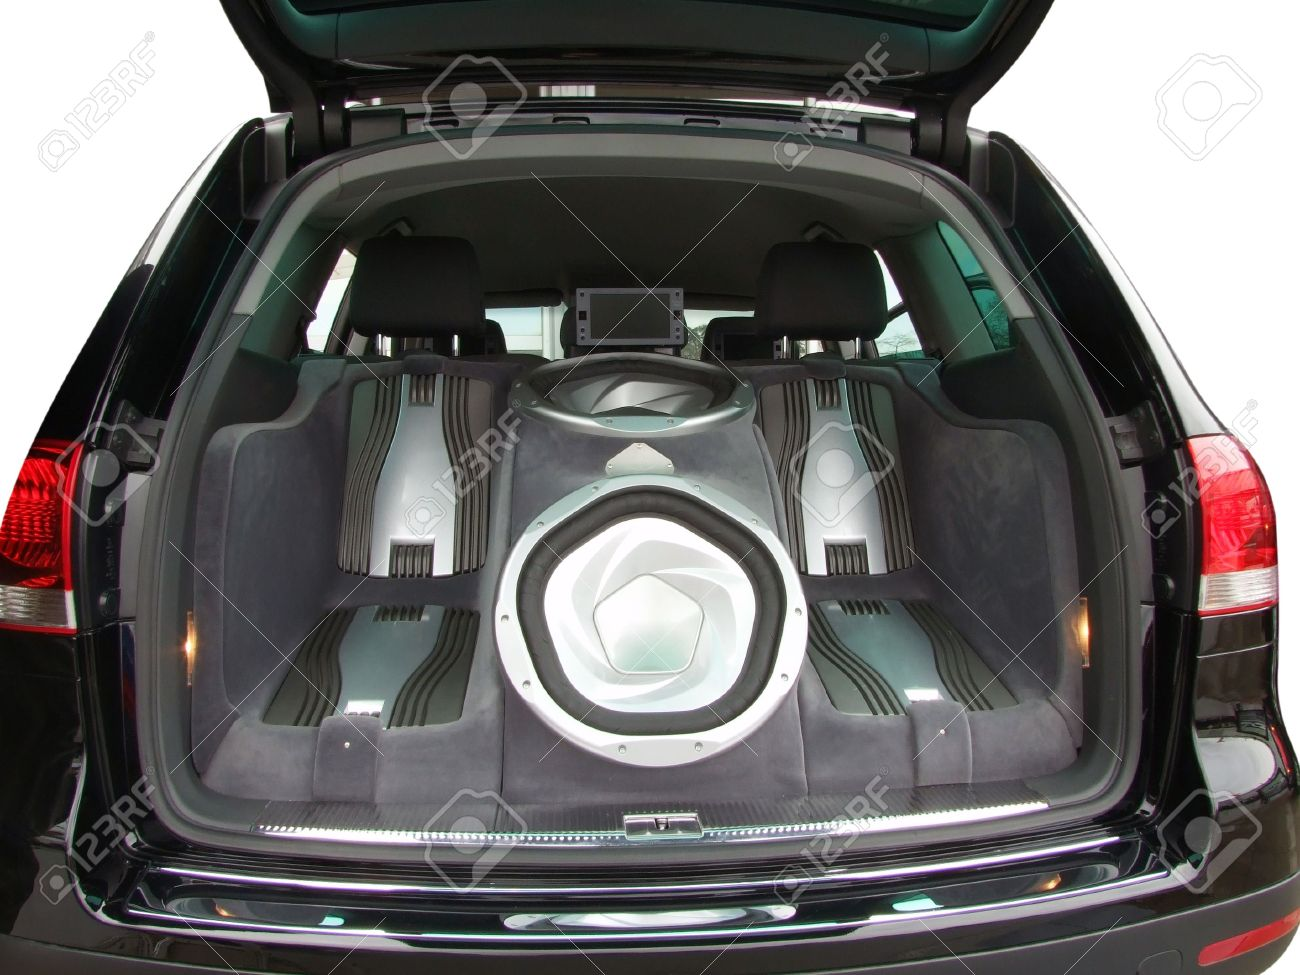 Luxury Car Audio System Stock Photo Picture And Royalty Free Image